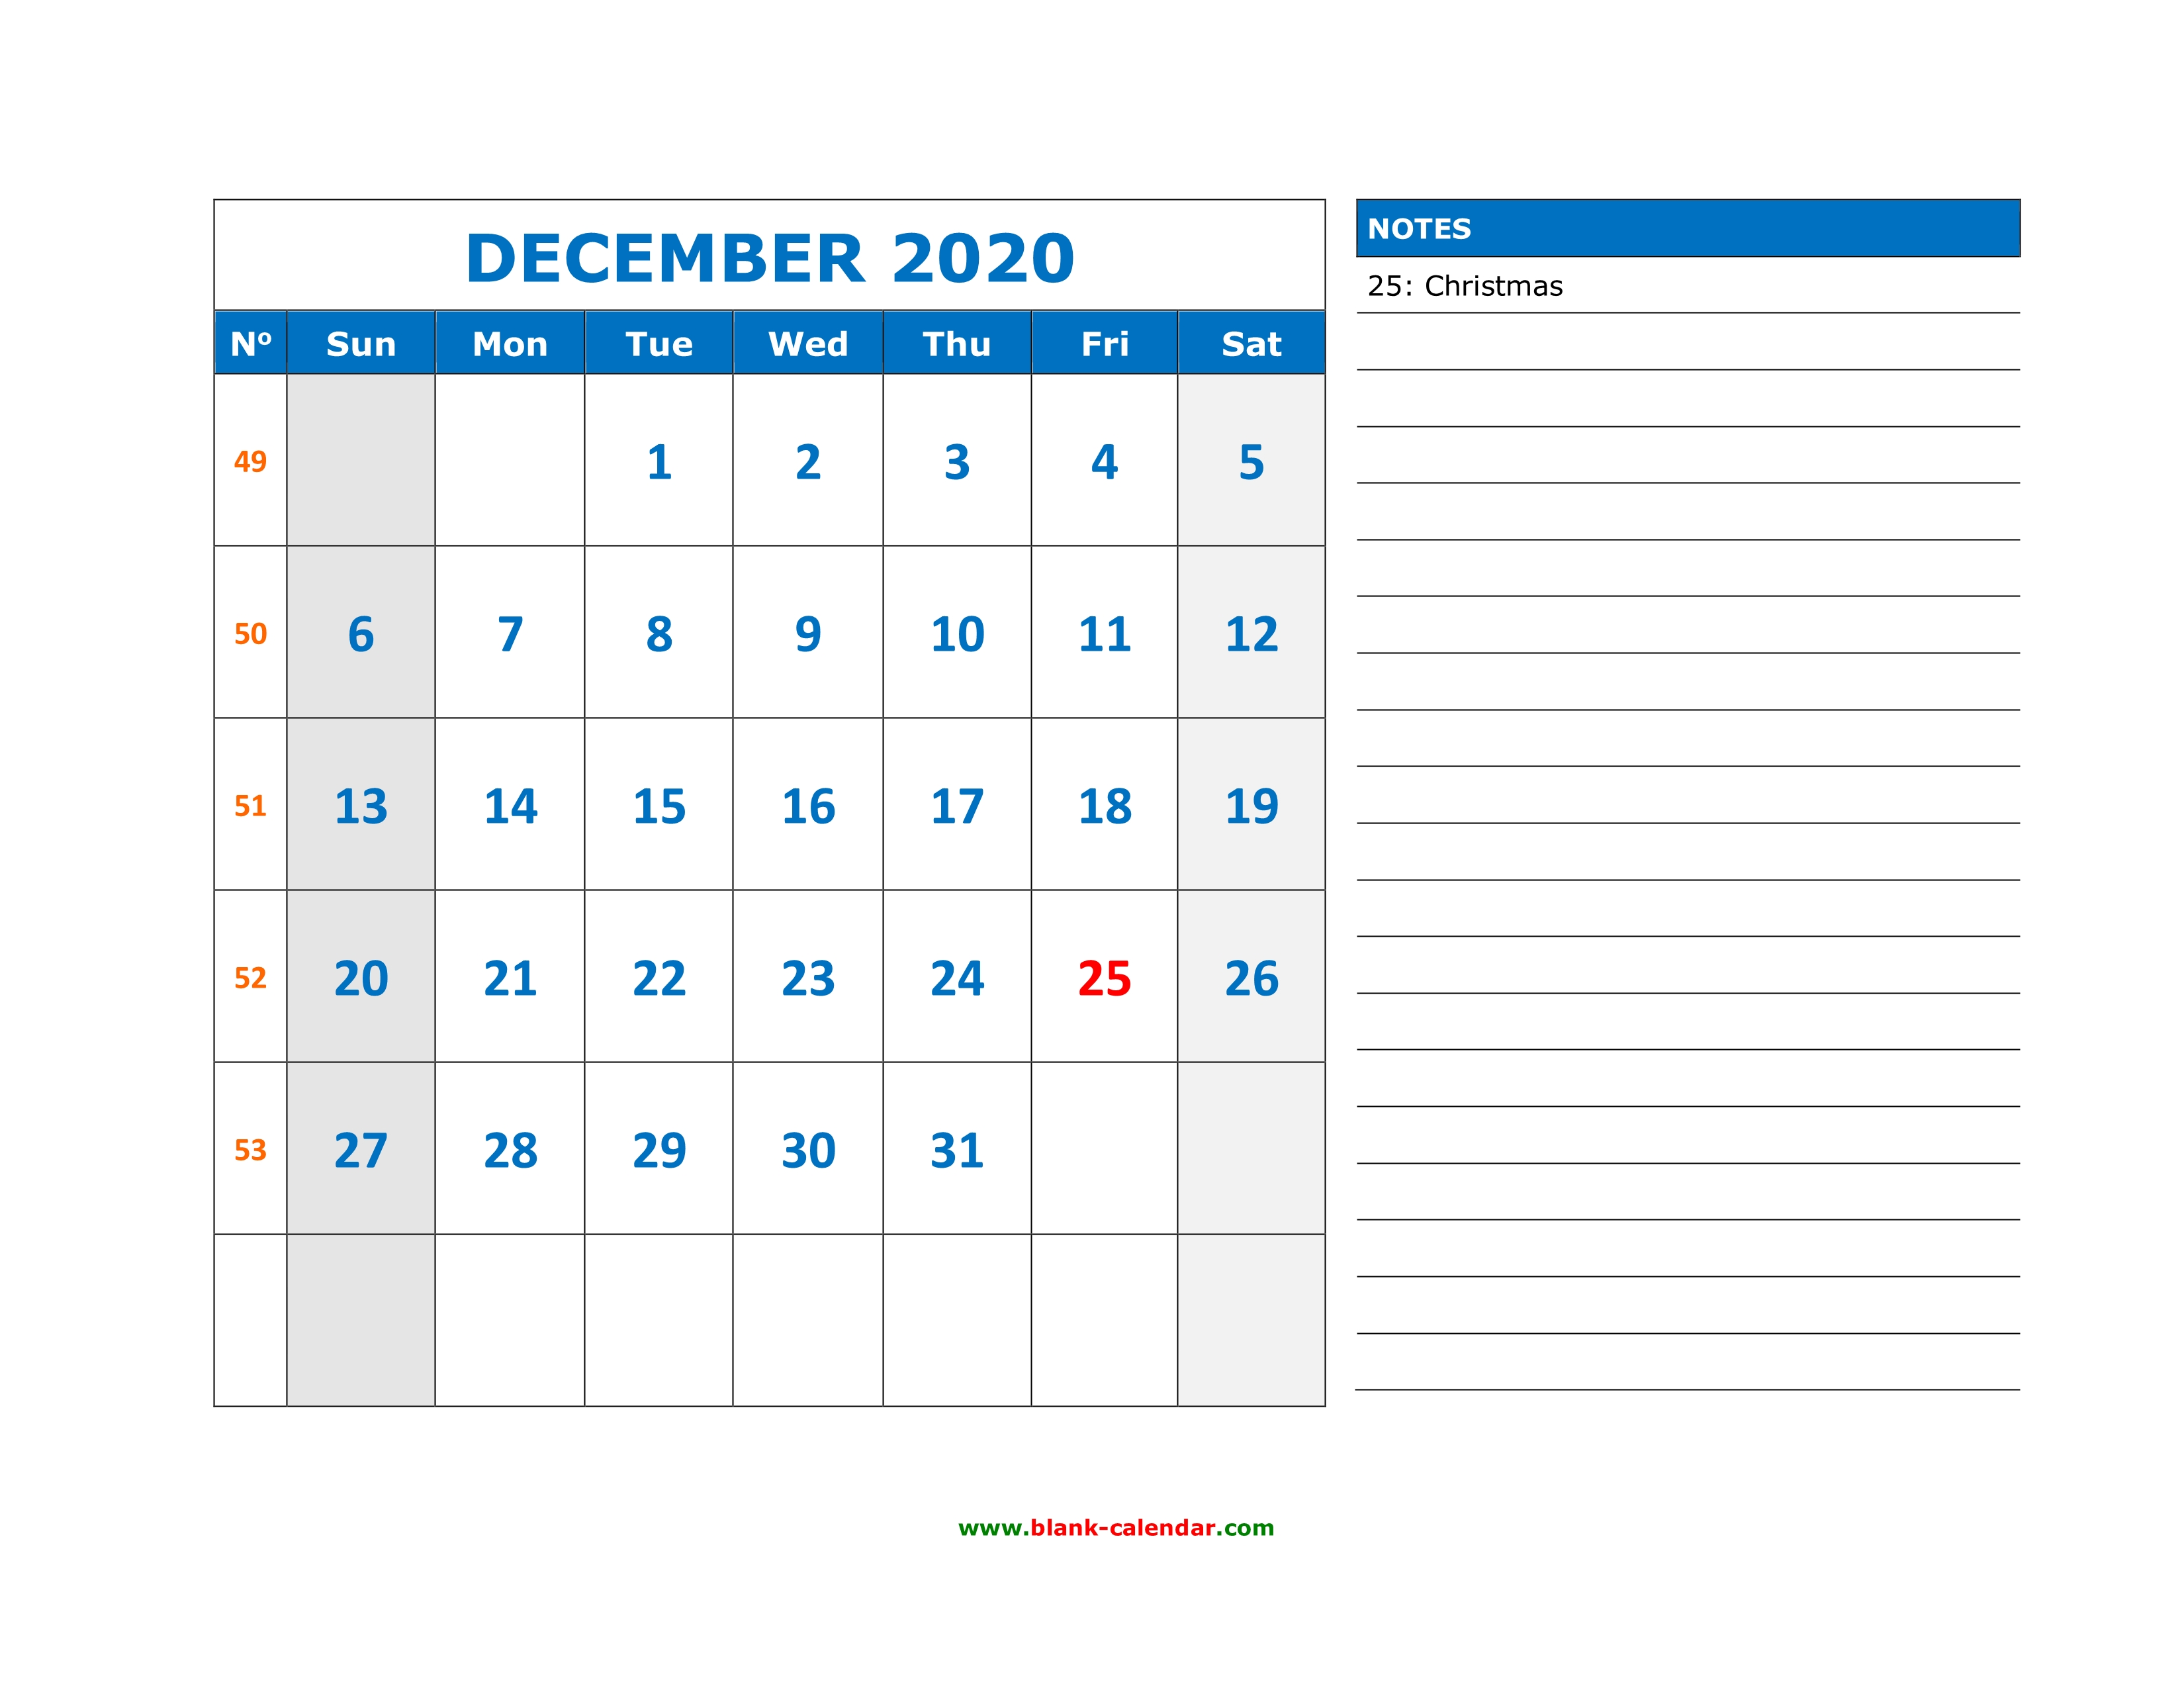 December 2020 Printable Calendar Space For Notes Included Free Download Printable December 2020 Calendar, large space for